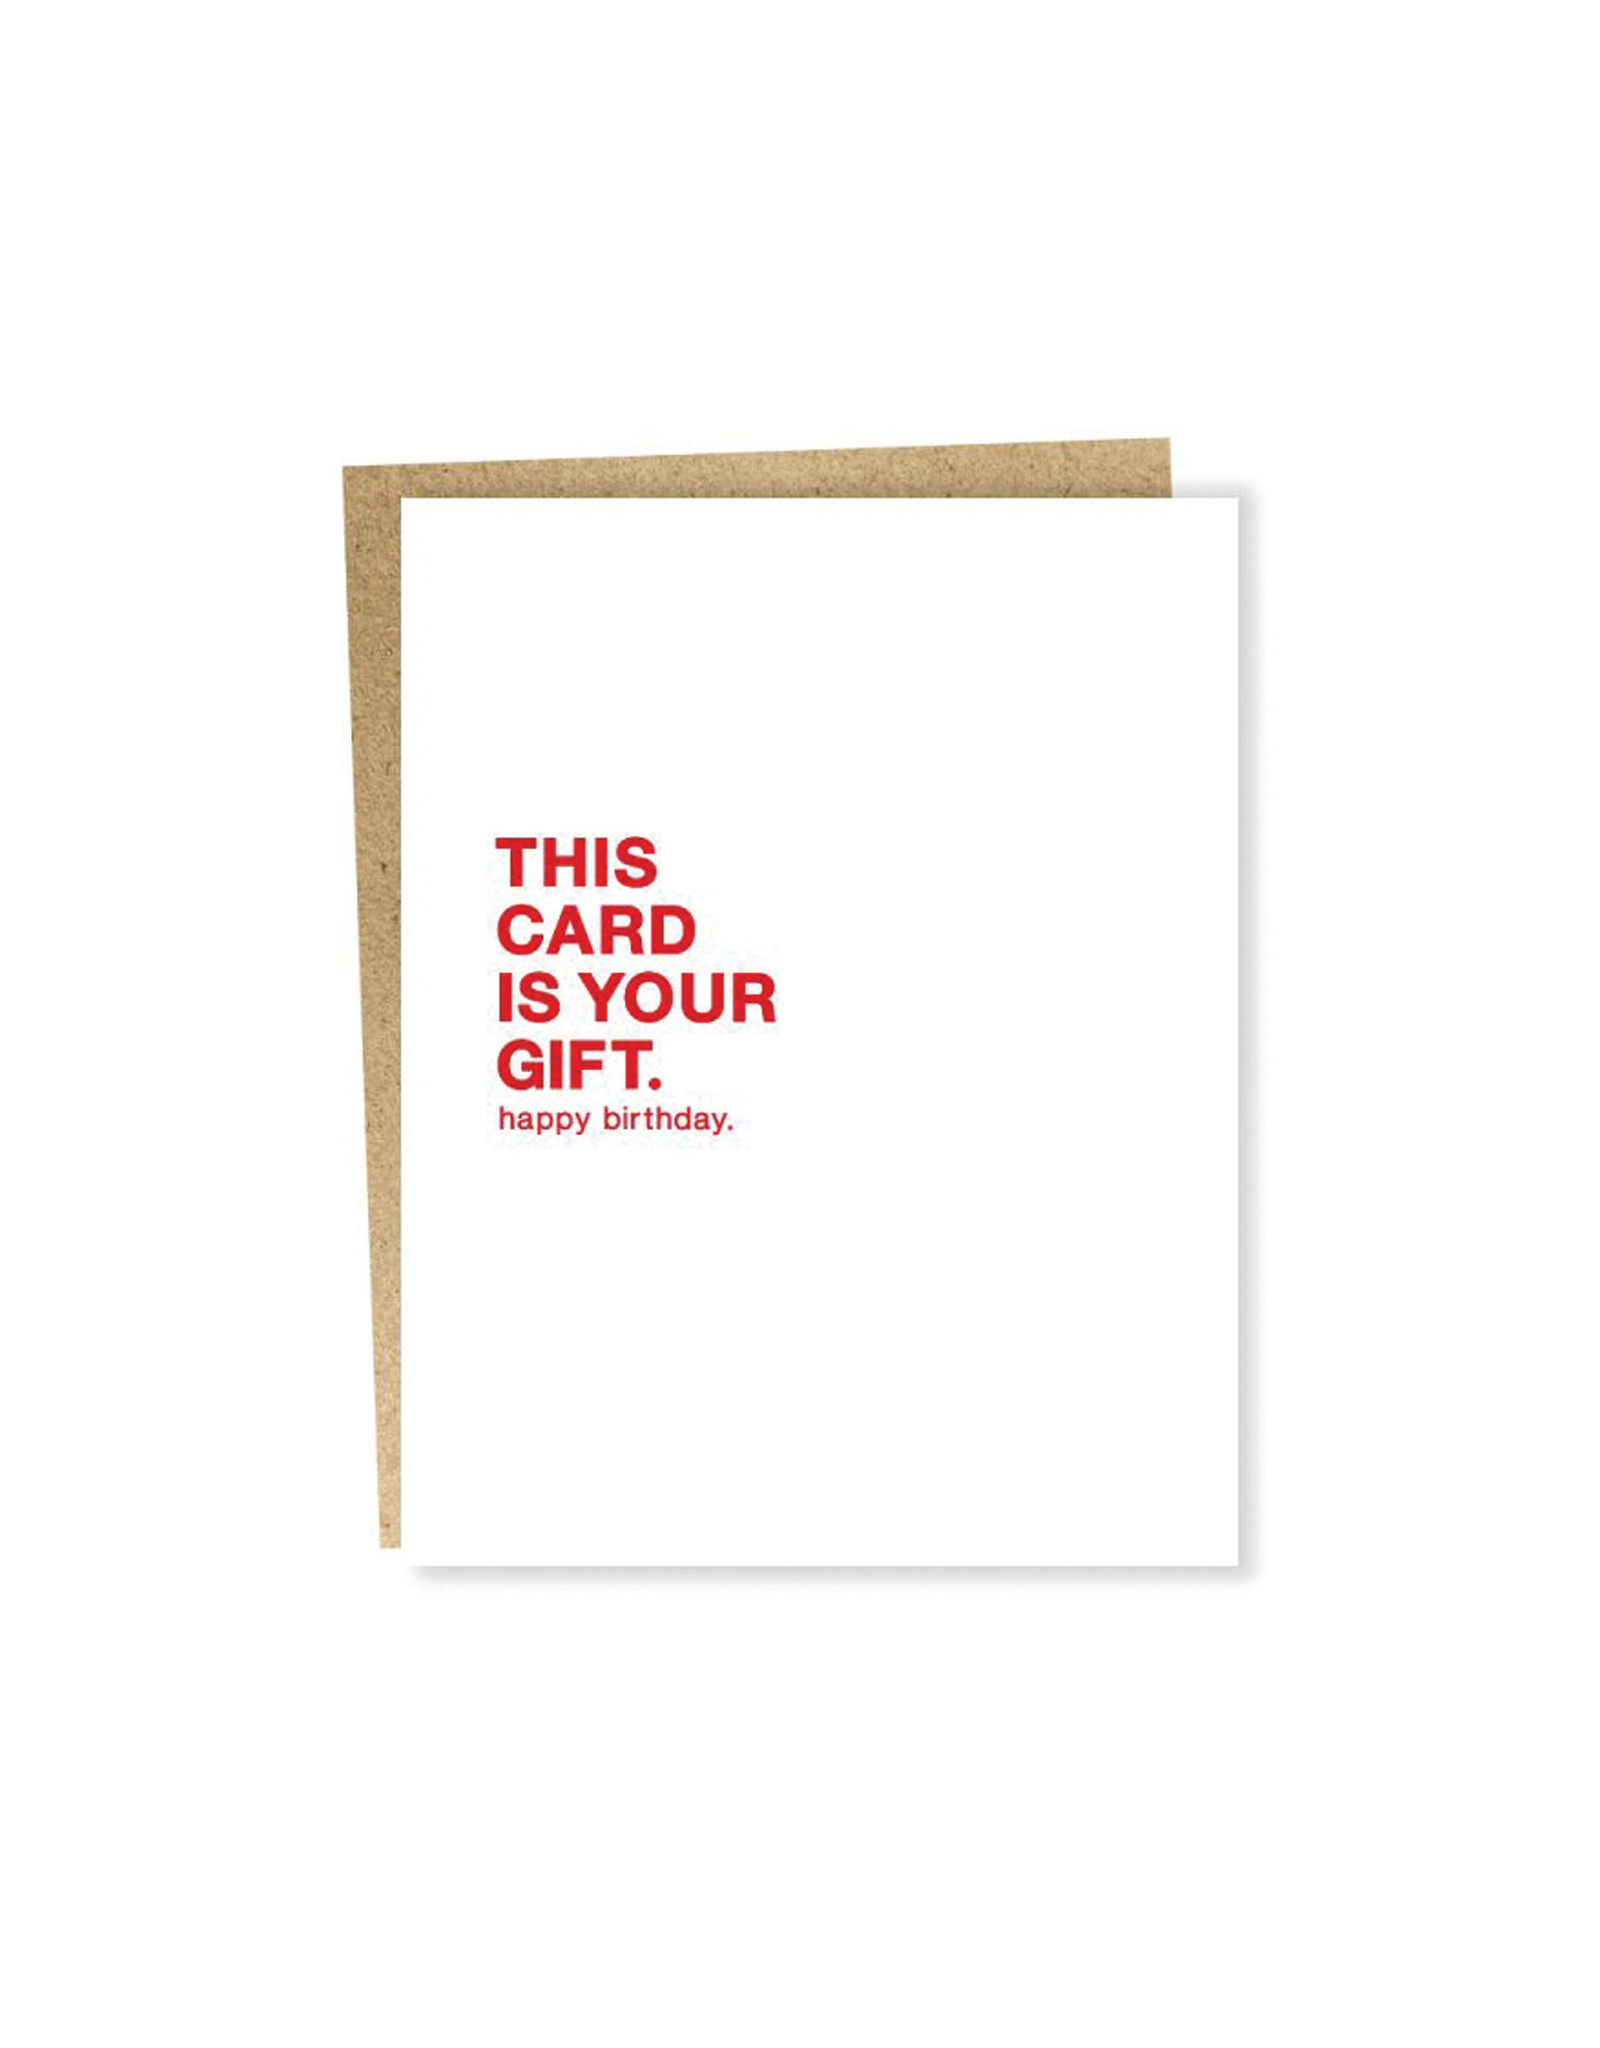 Sapling Press, Make A Wish, This Card Is Your Gift Card